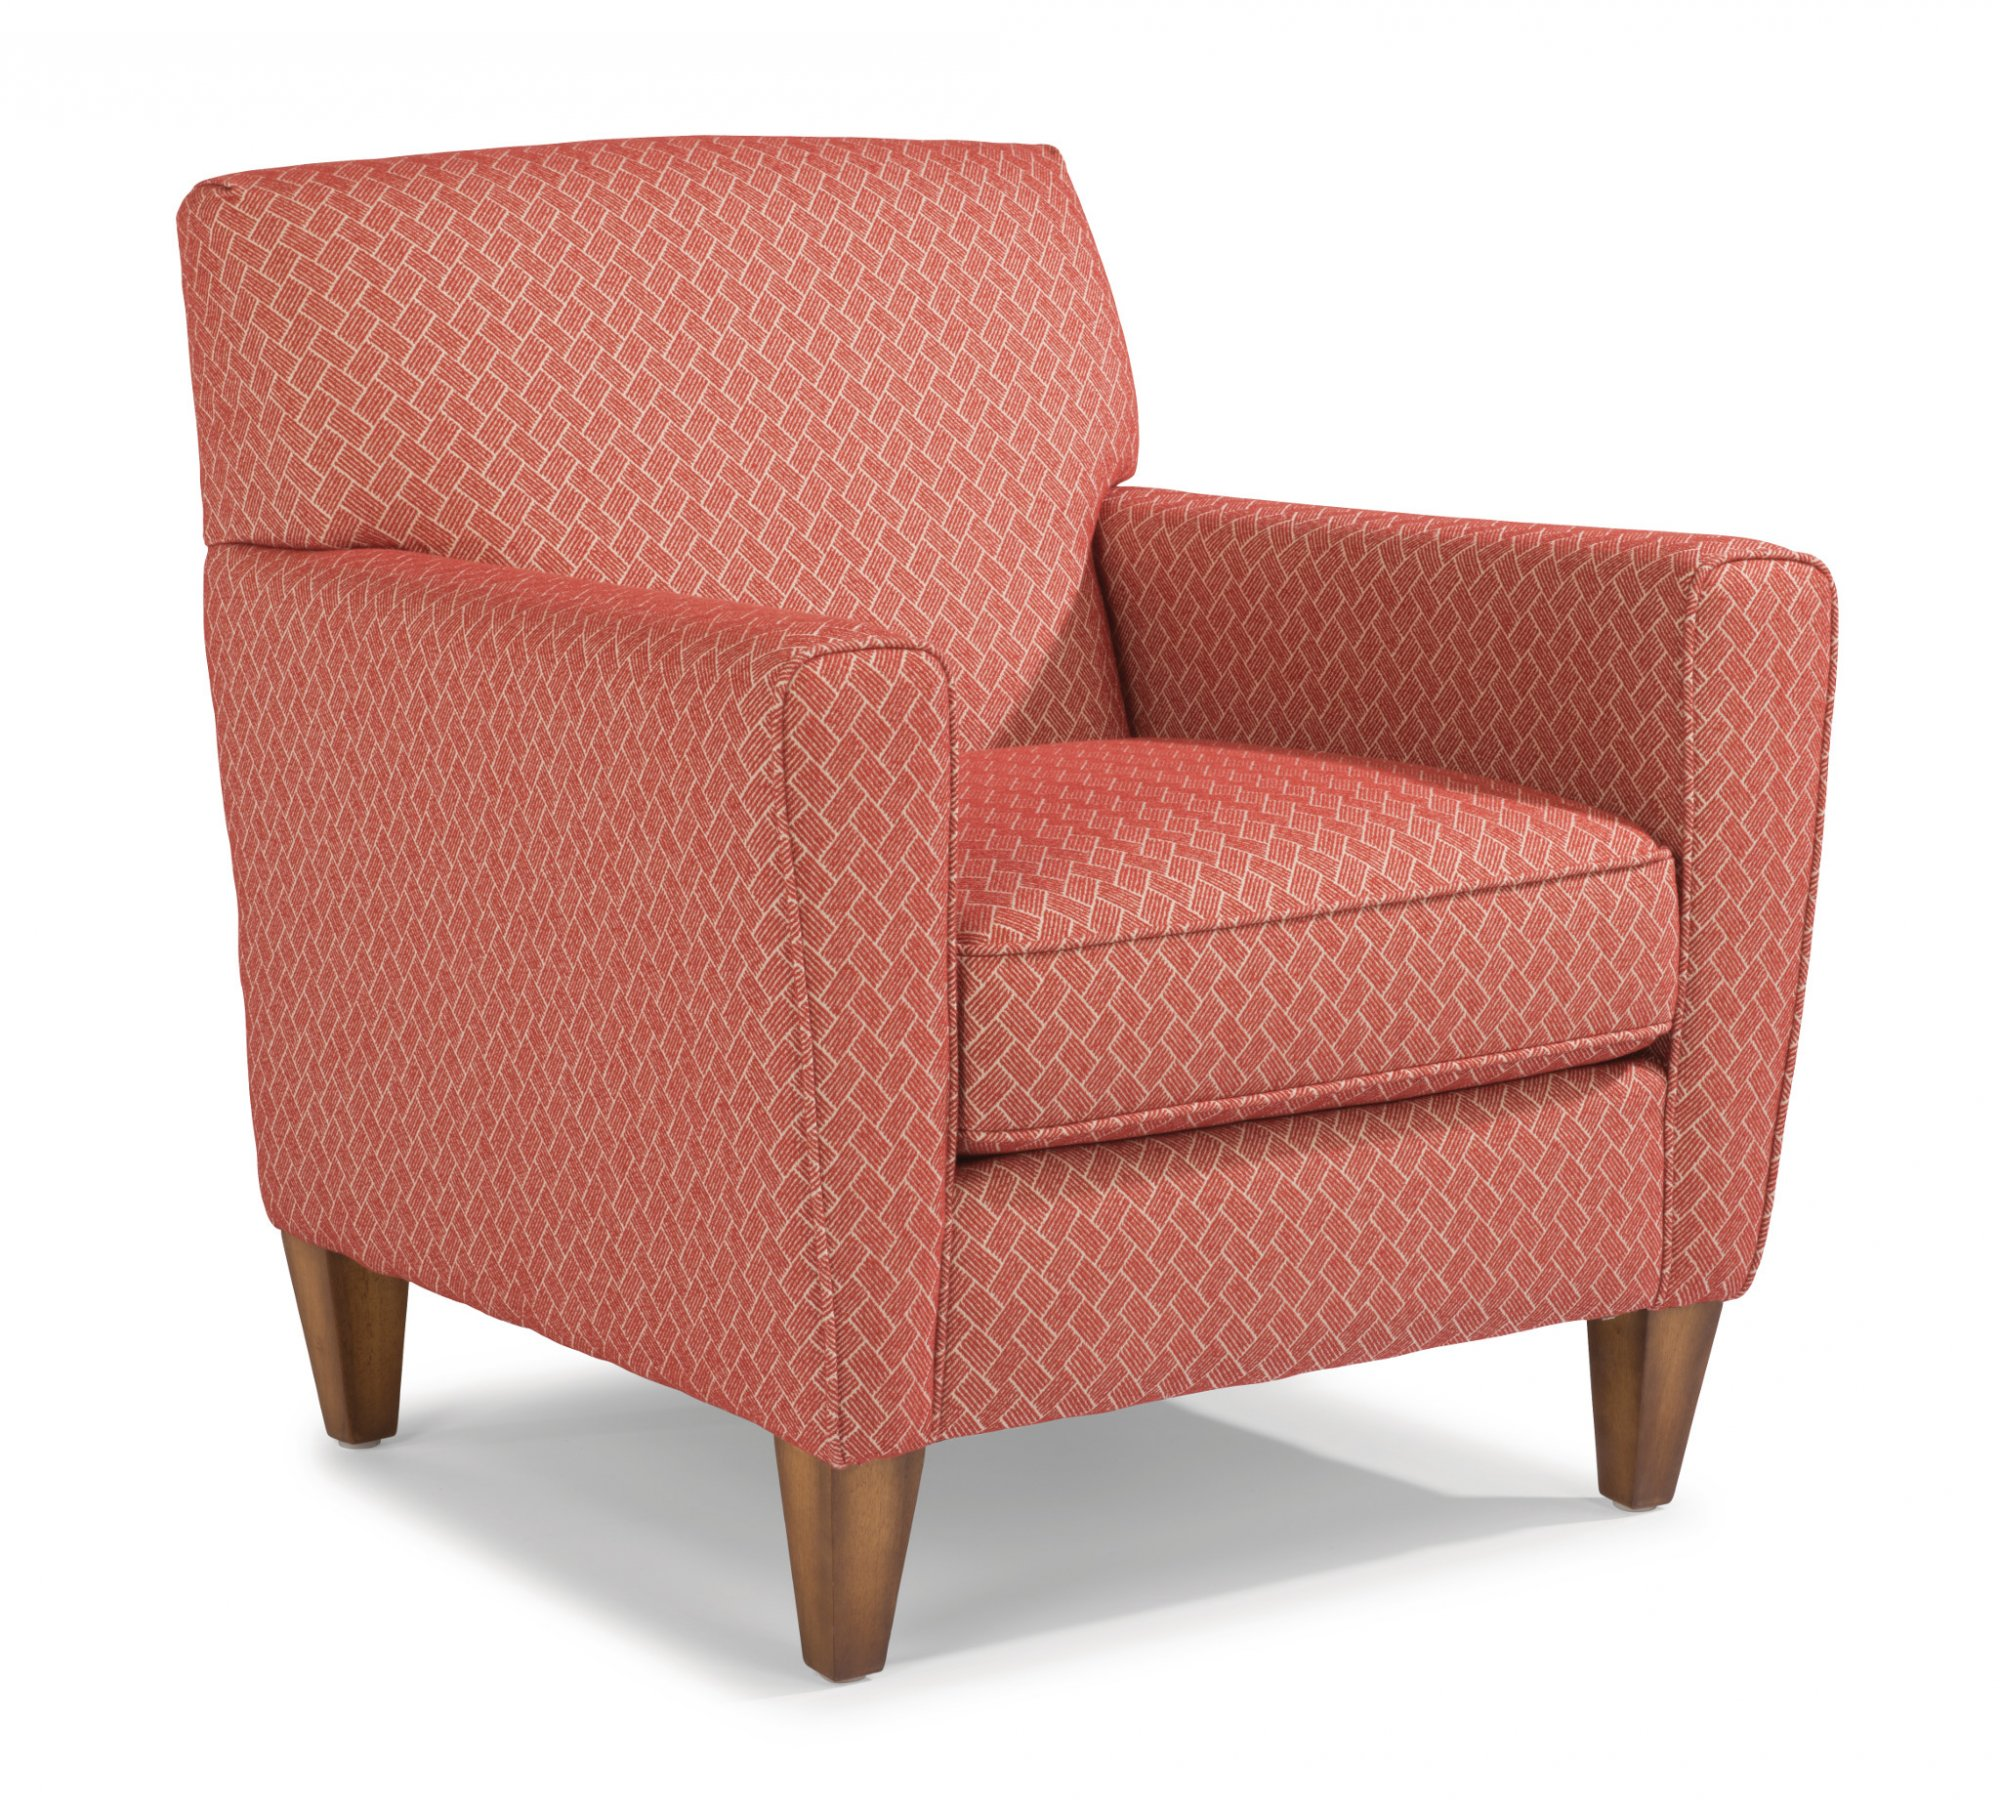 The Digby Chair By Flexsteel Furniture